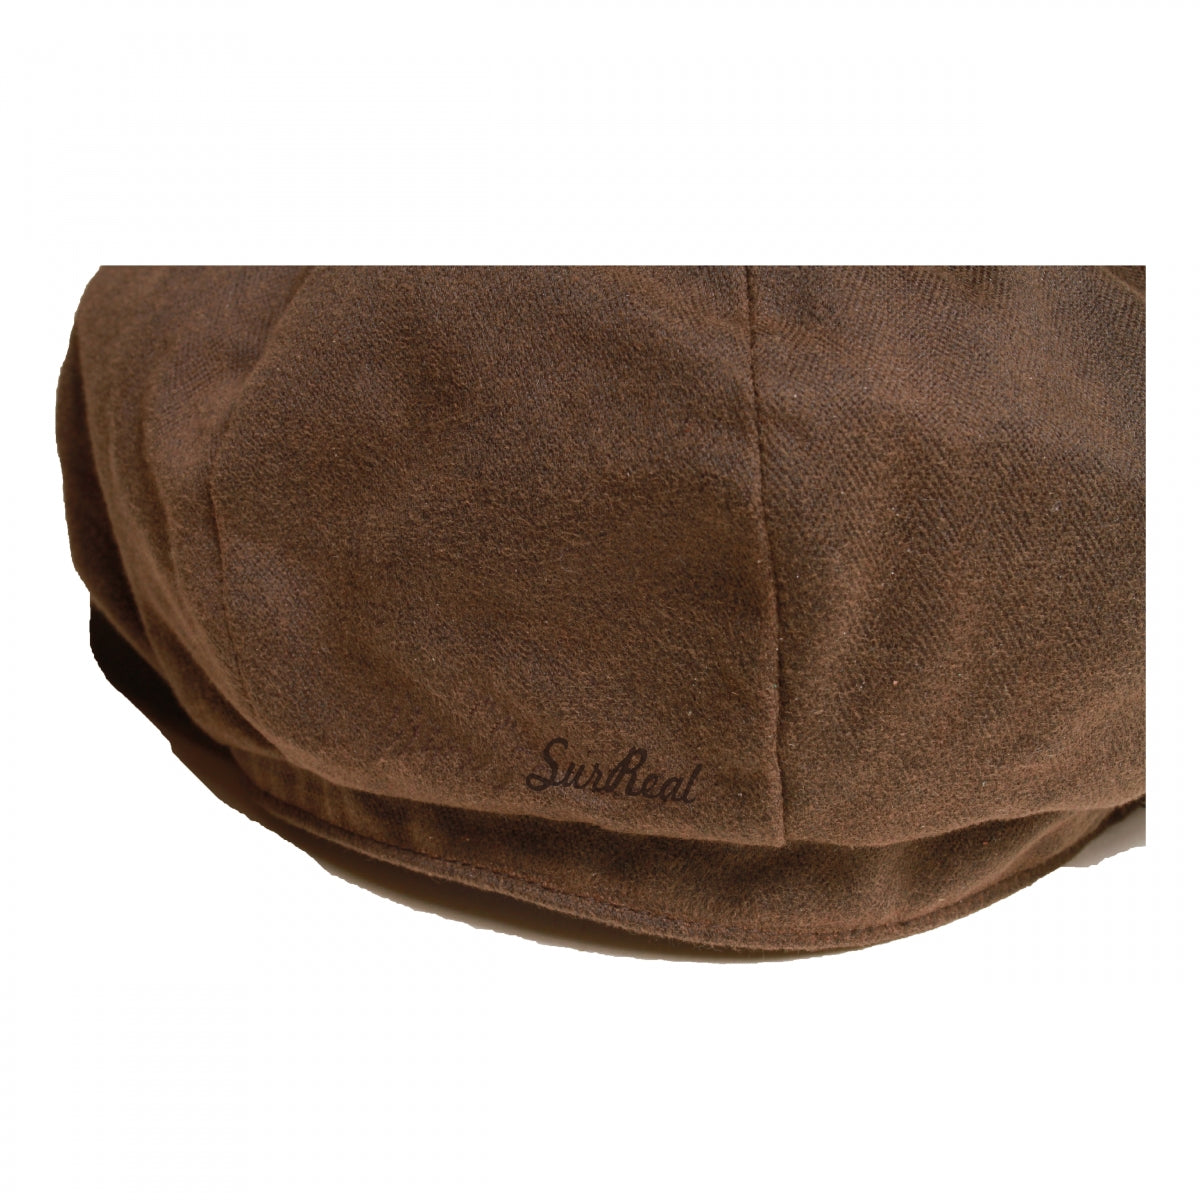 Randy_Waxed Newsboy Hat